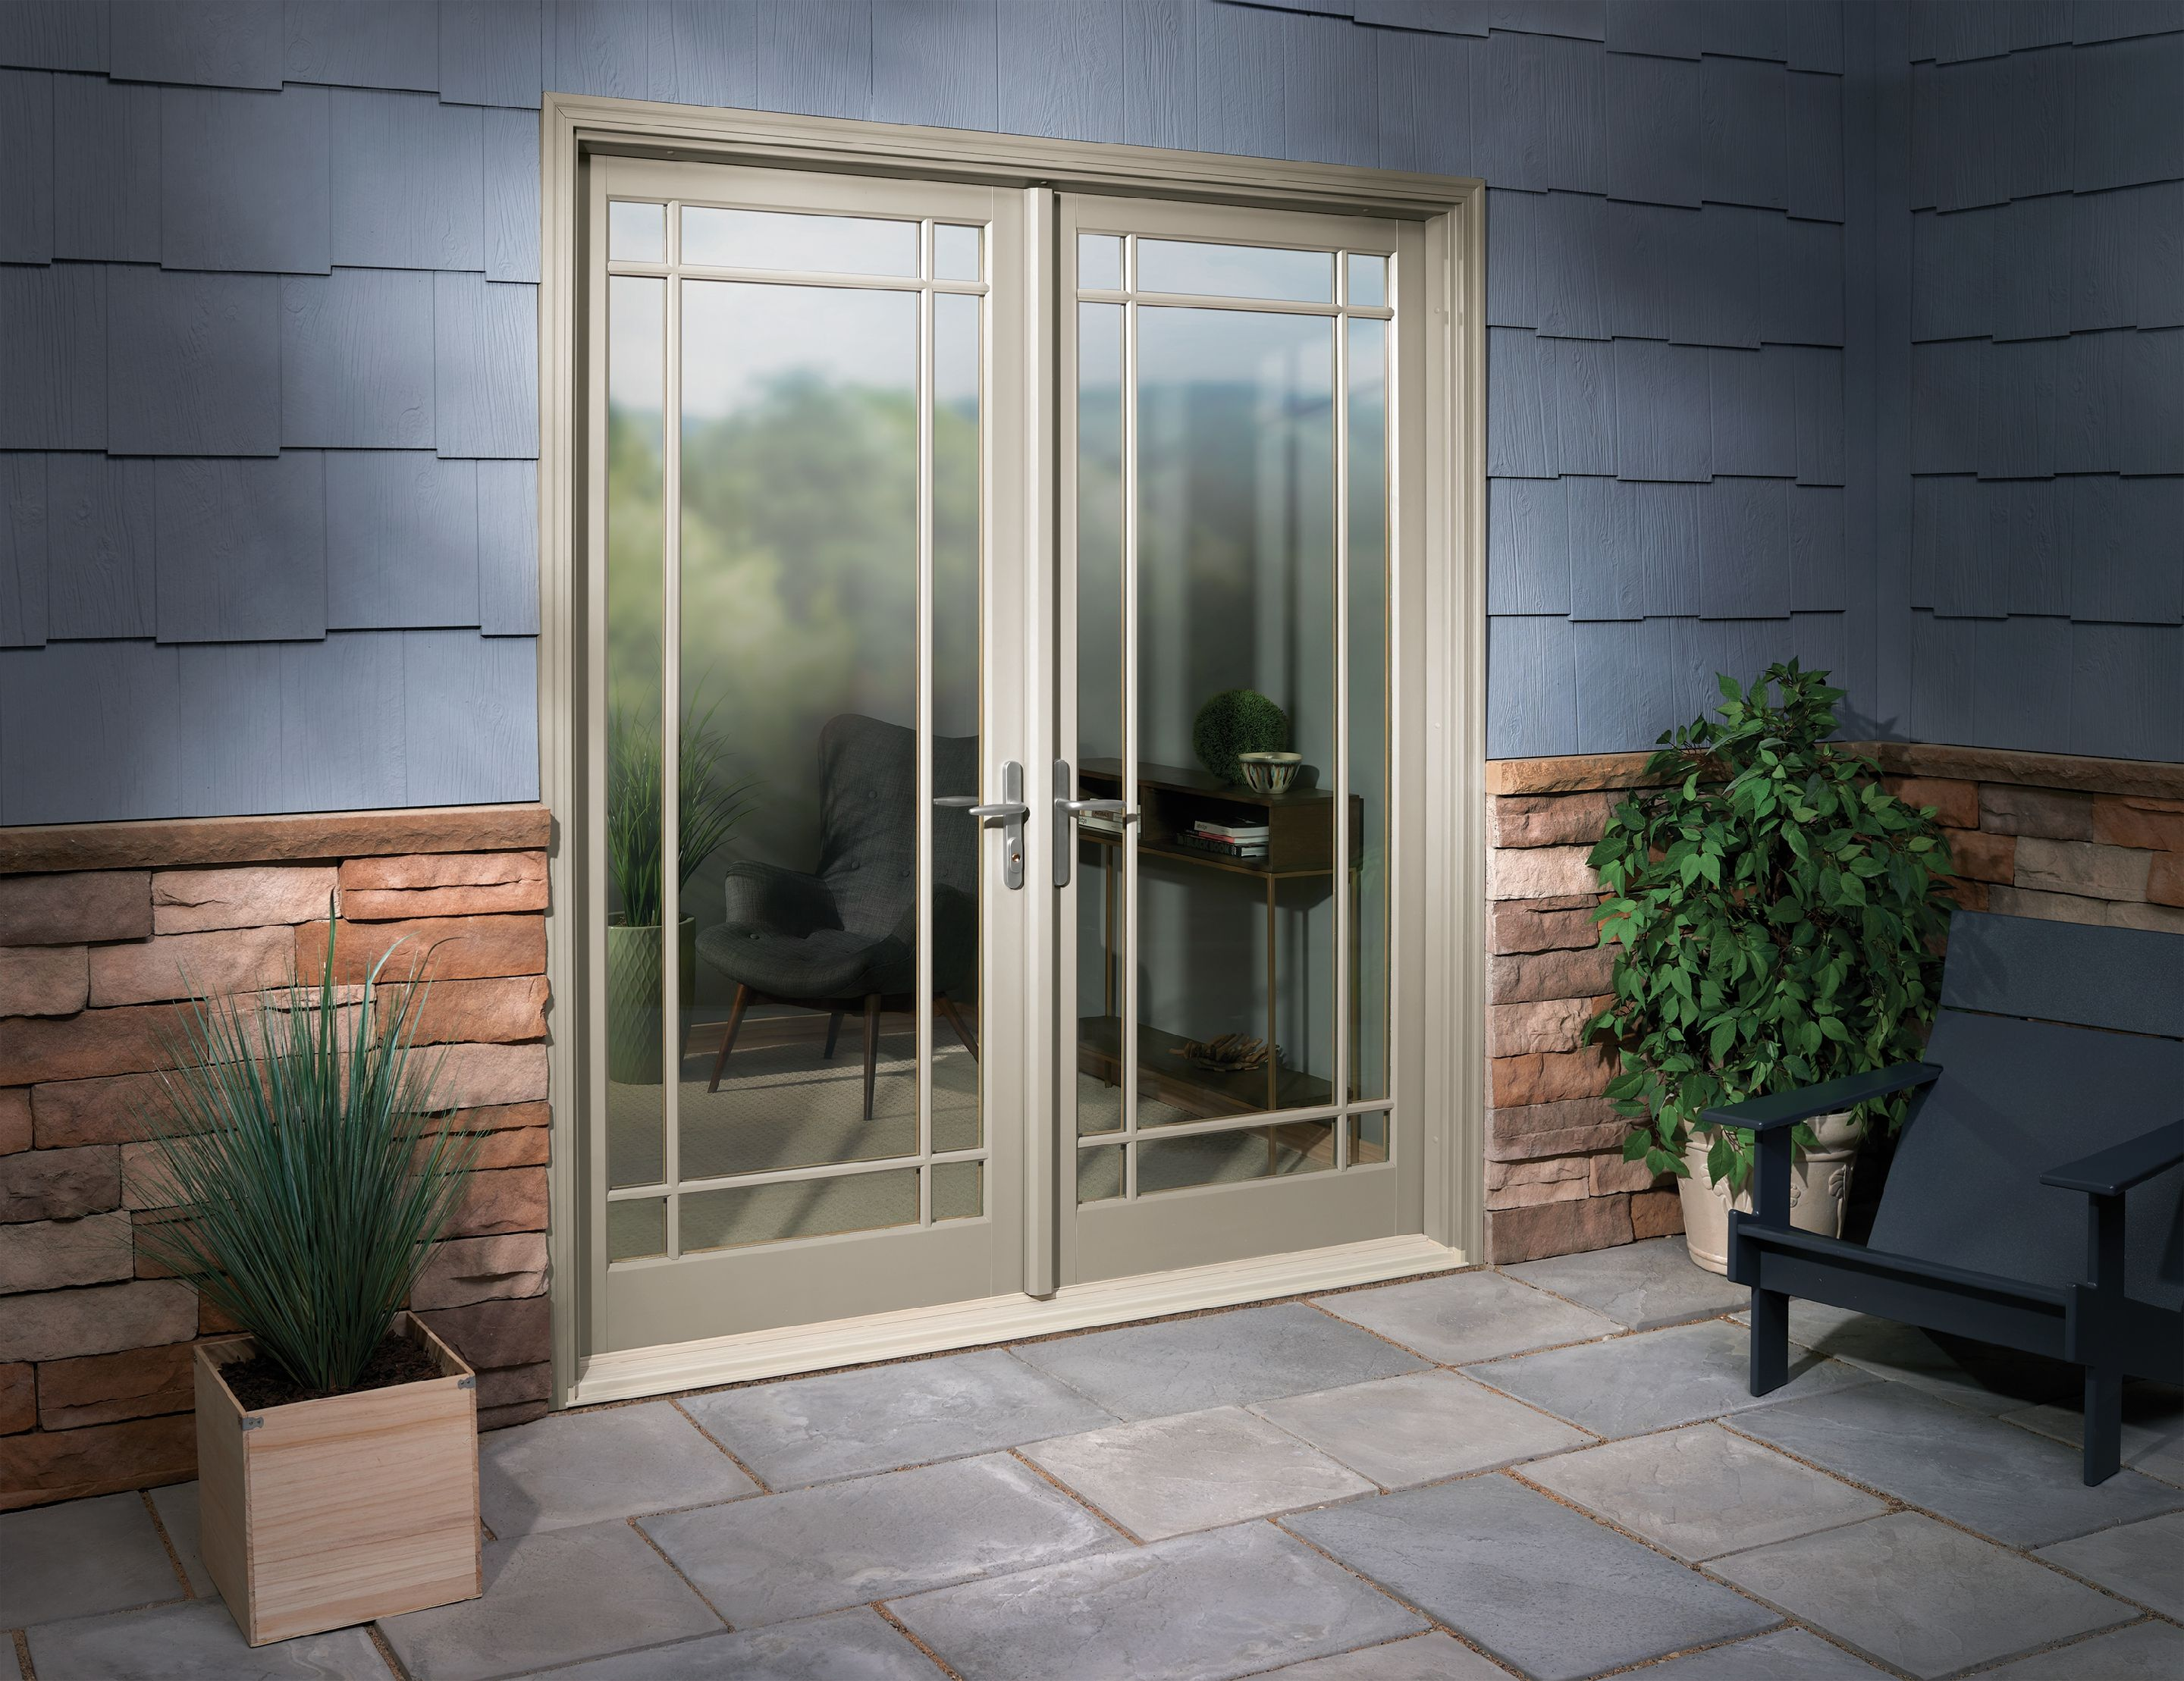 Infinity Inswing French French Doors Exterior French Doors Outdoor Living Space Patio